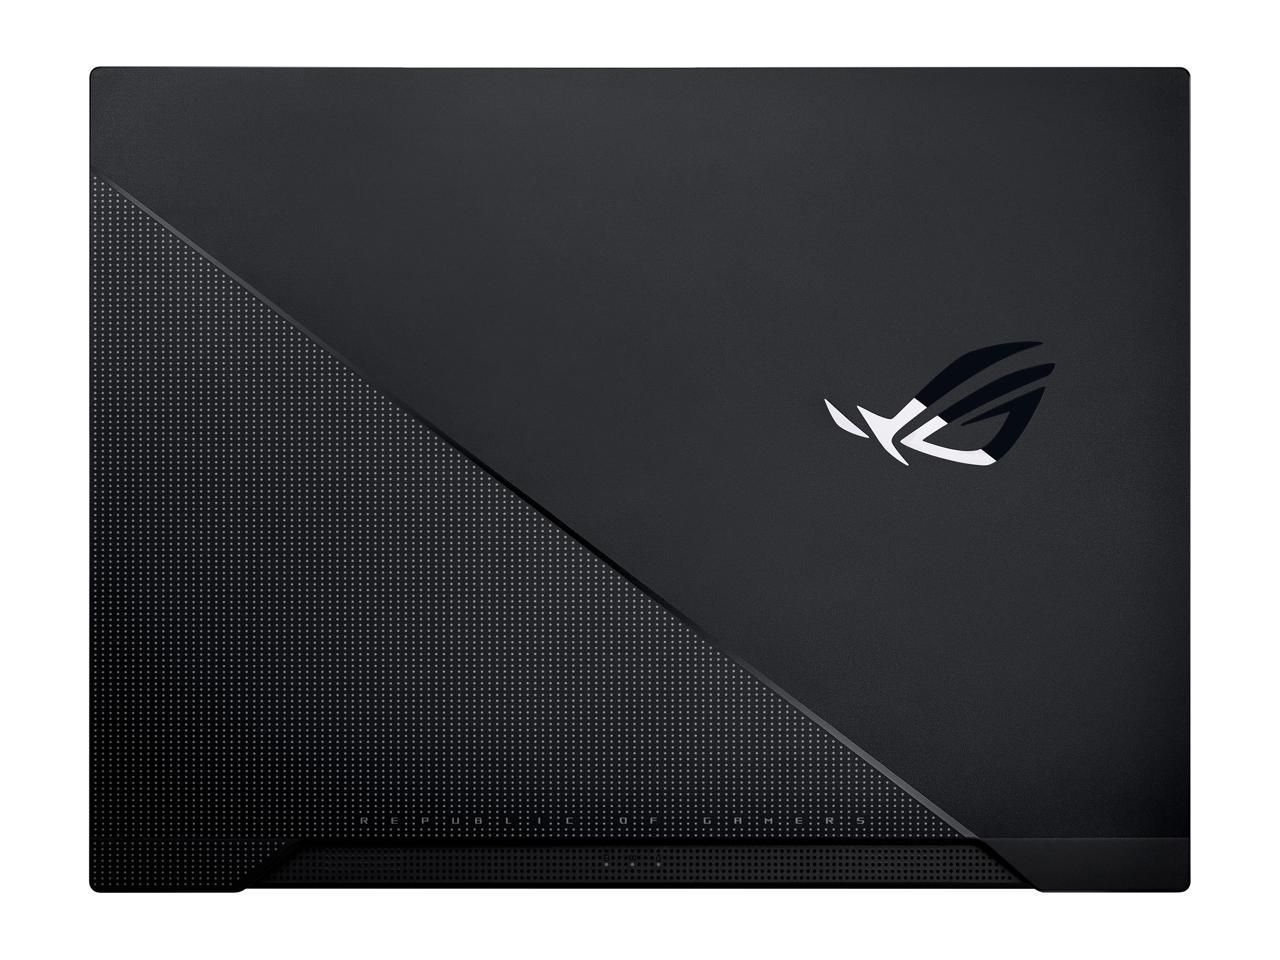 asus-rog-zephyrus-duo-se-15-laptop-with-amd-ryzen-9-5980hx-overclockable-cpu-listed-over-at-newegg_13